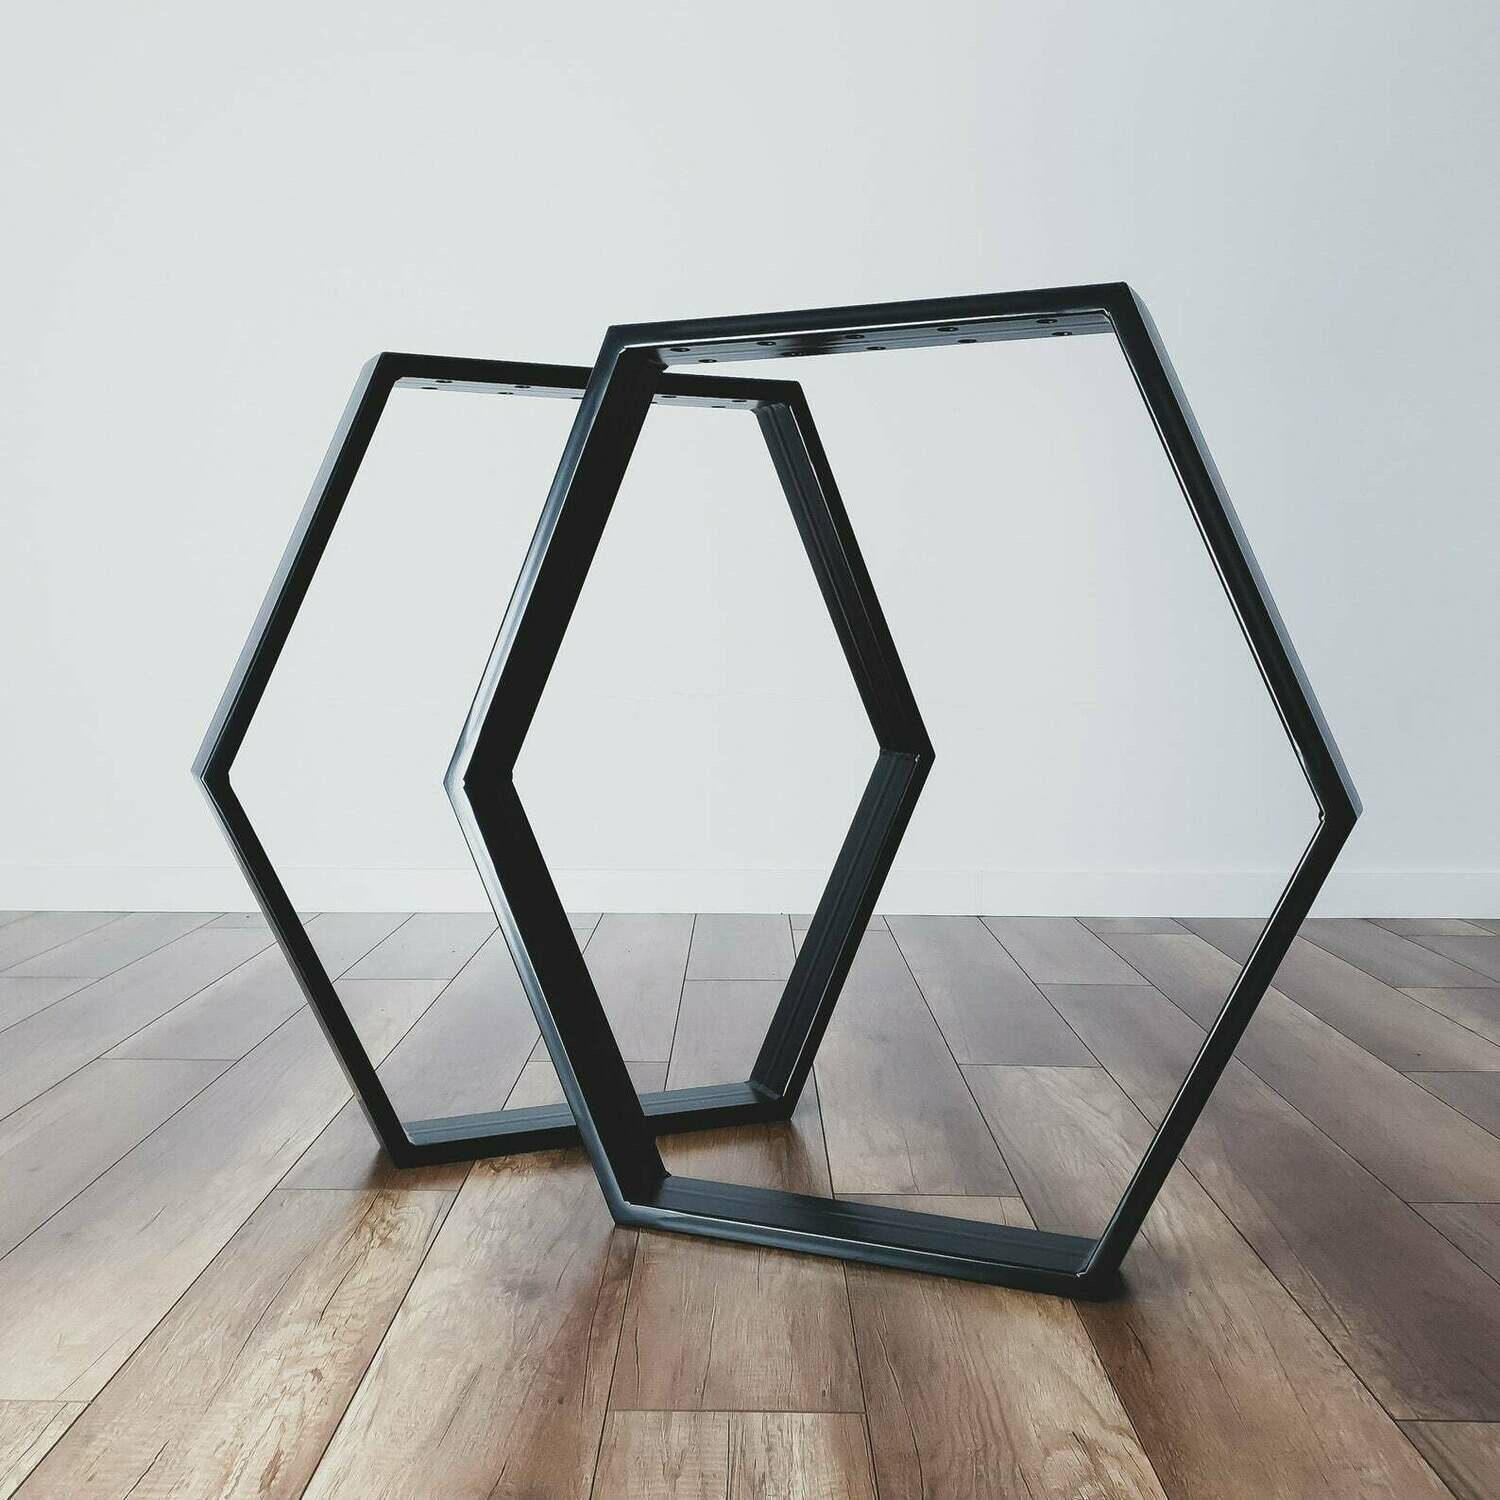 Metal Dining Table Legs (set of 2). Steel Dining Table Legs. Table Base. Hexagonal metal Frame for Mid Century Modern Table